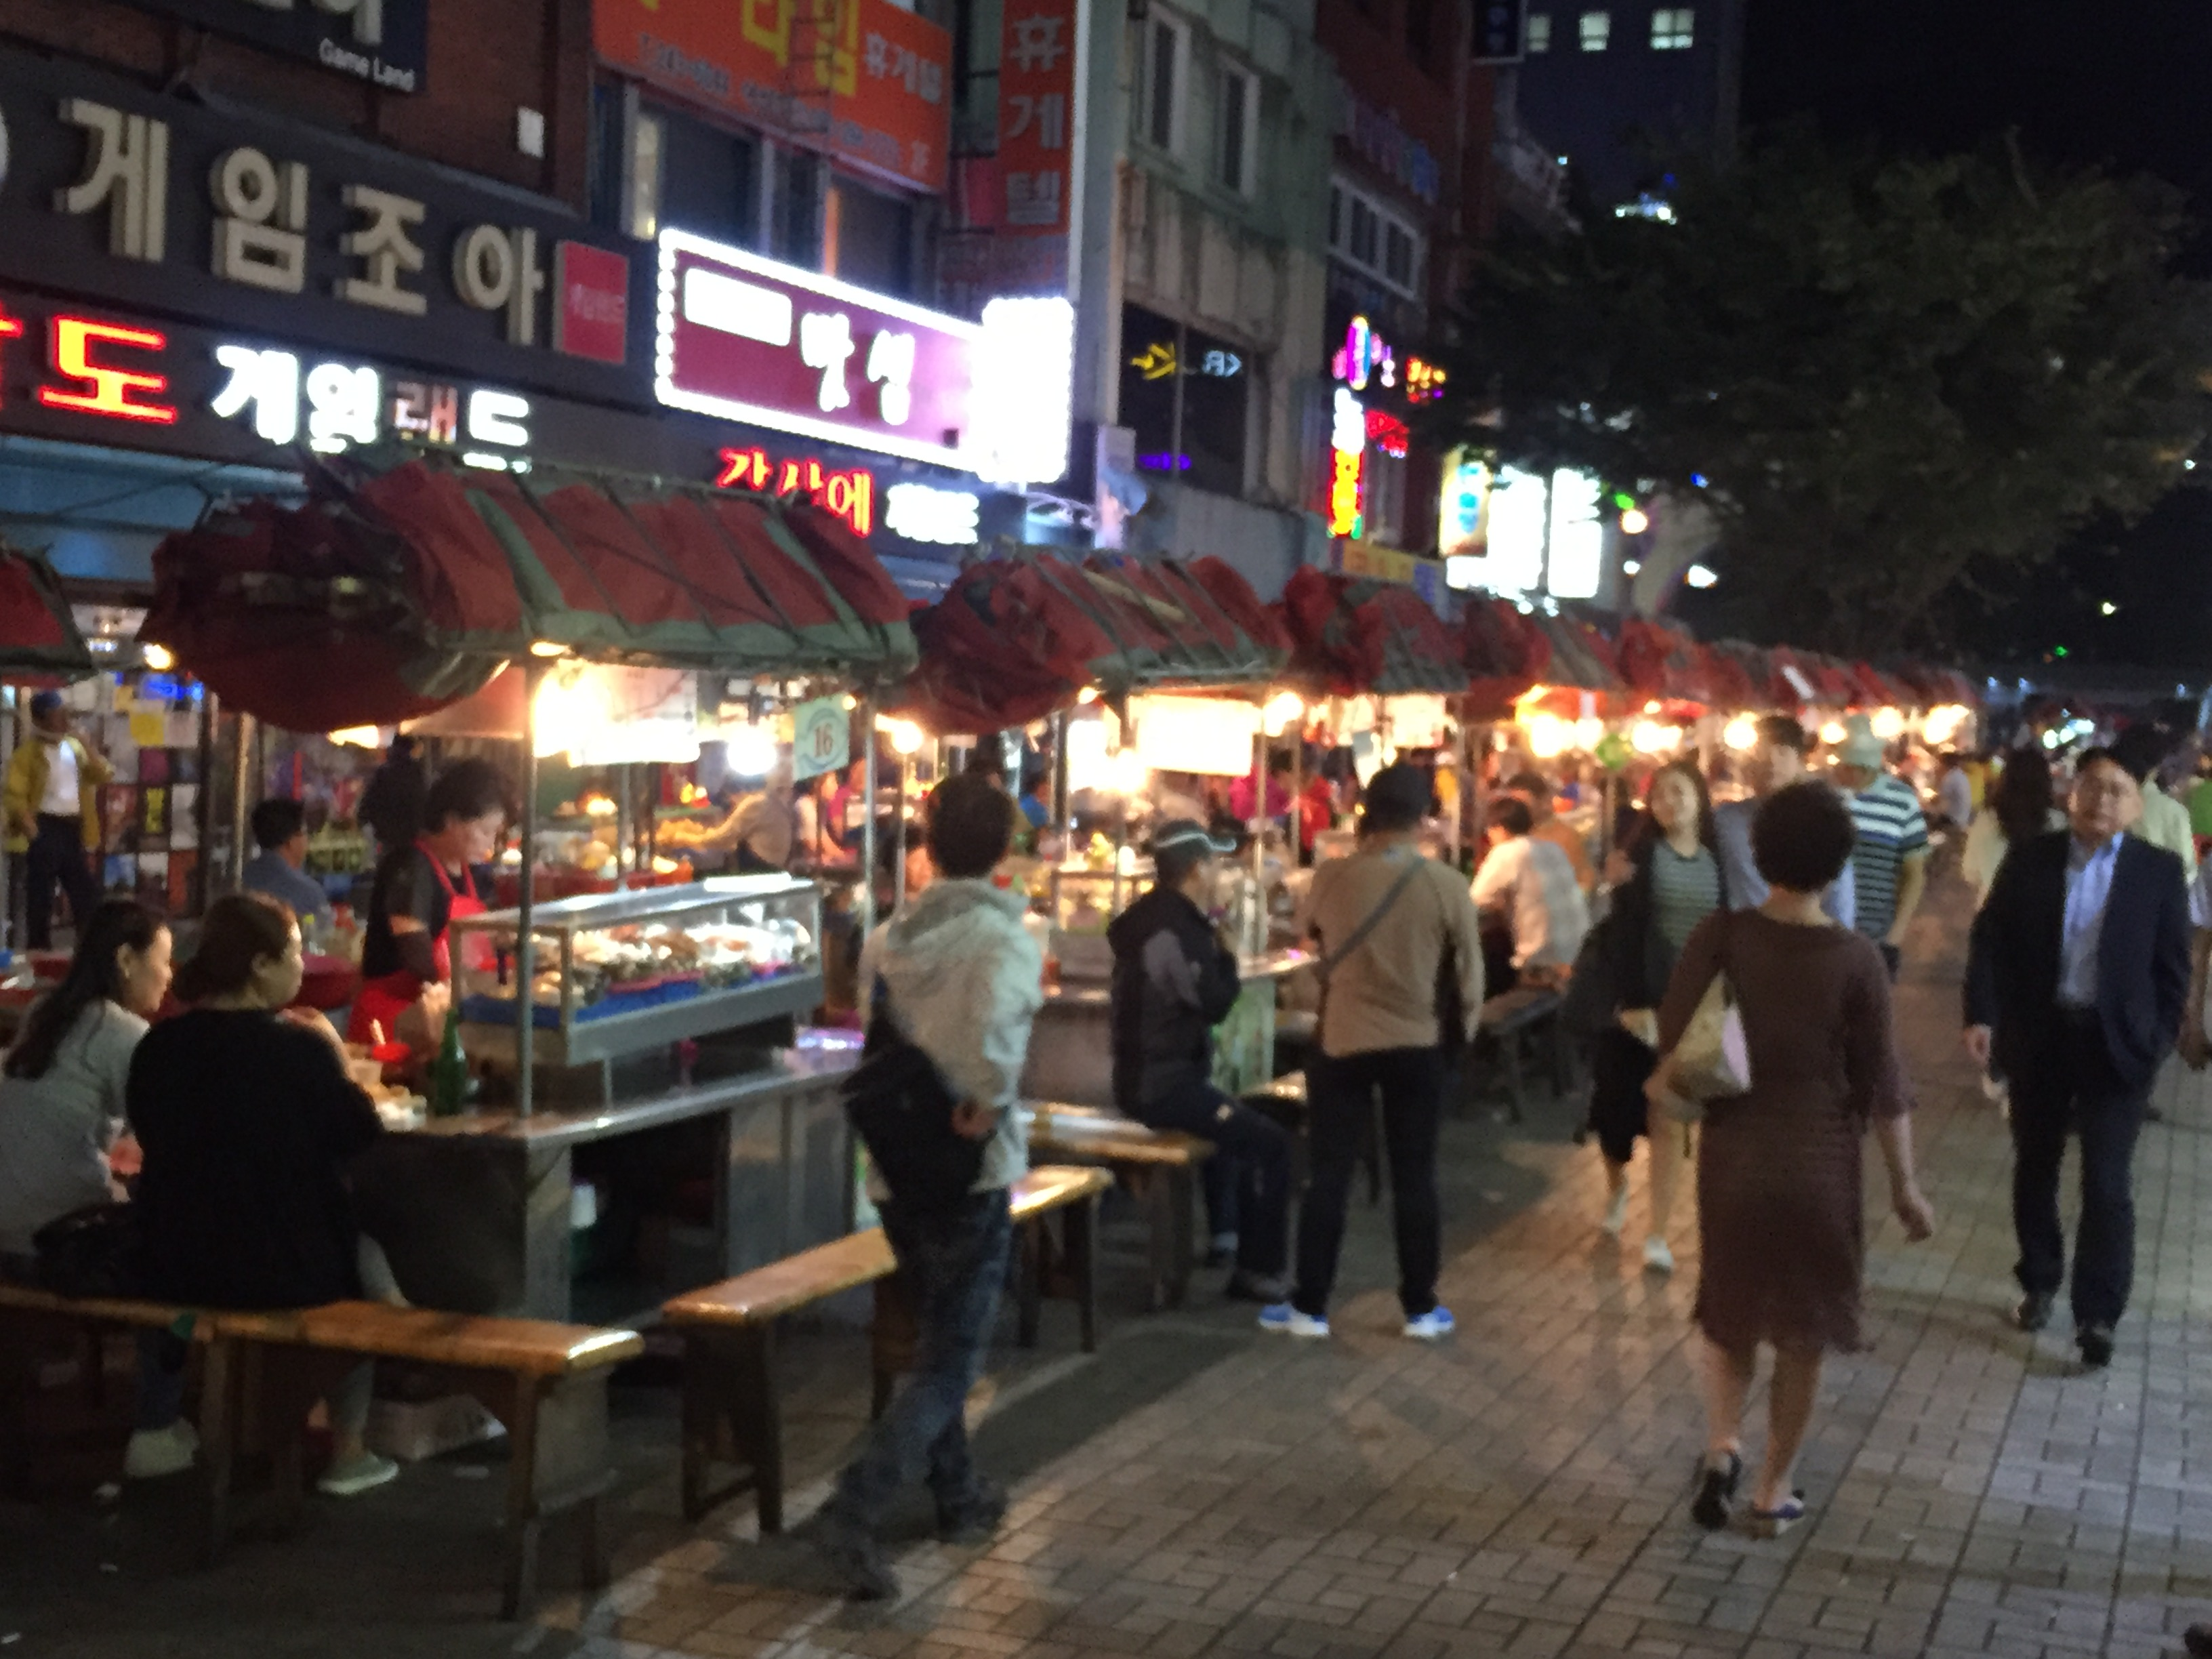 biff square open air cook food stalls of korean cuisine and seafood